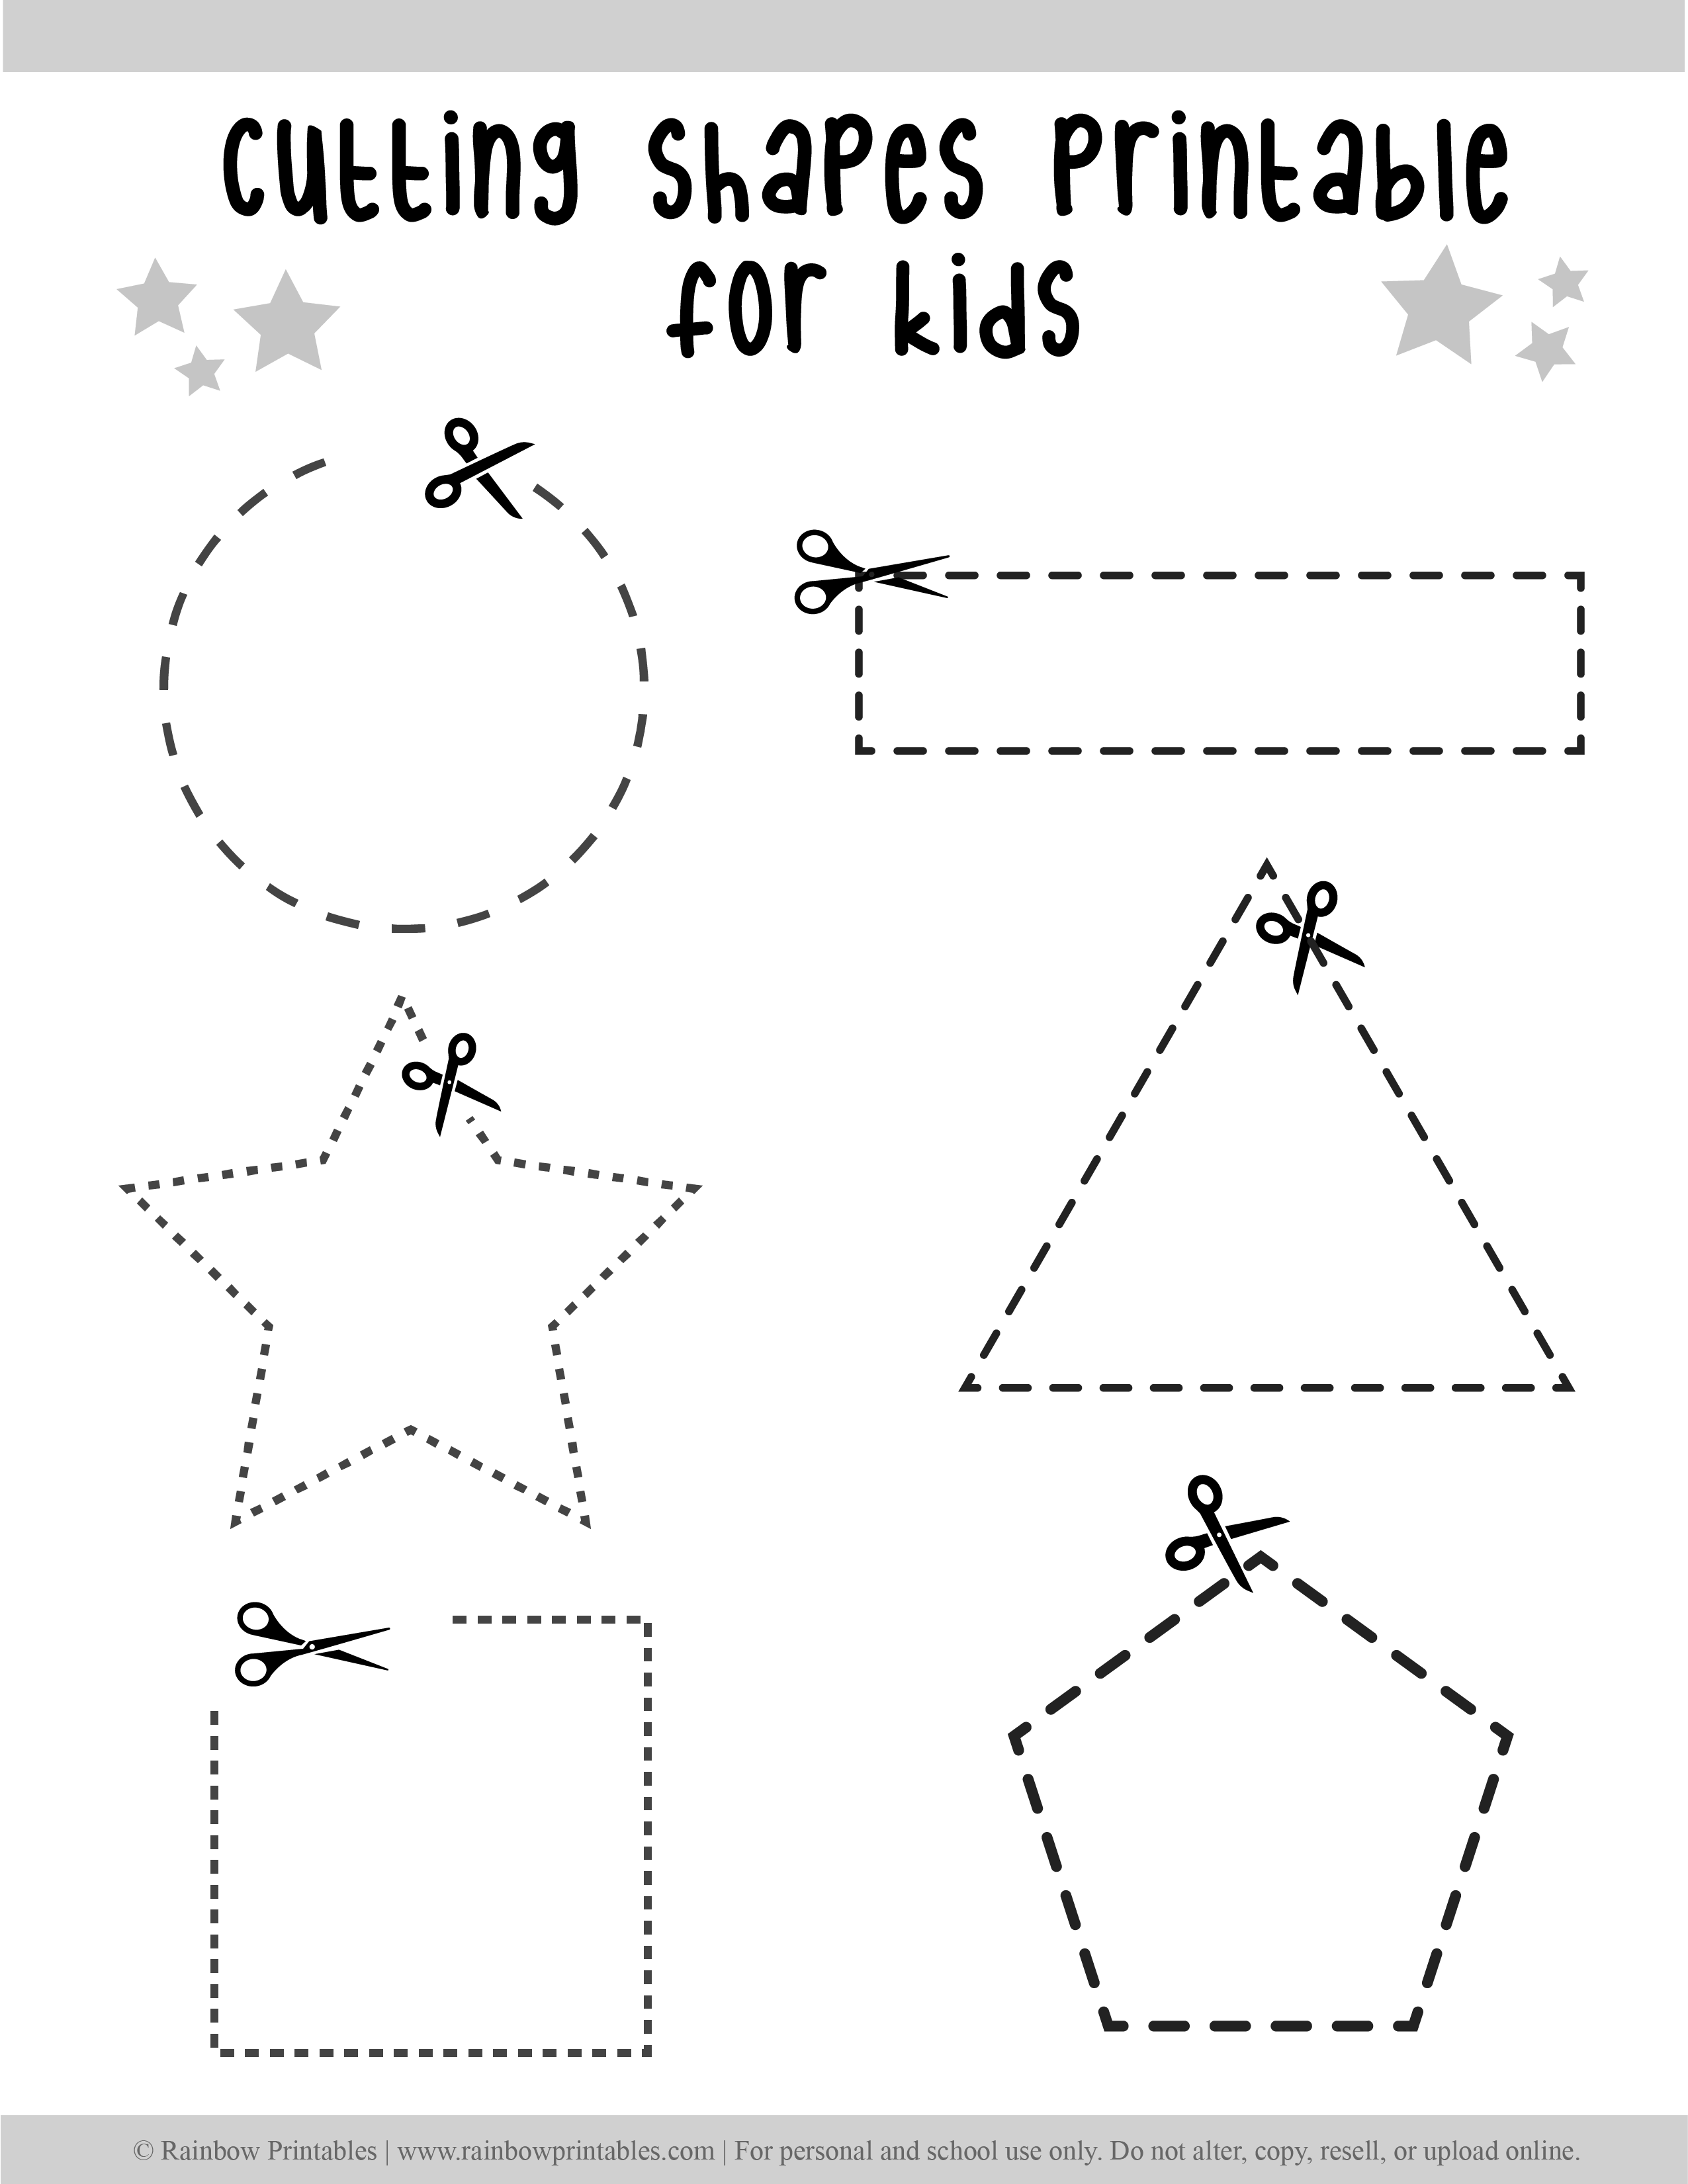 Paper Cutting Lines Shapes Worksheets For Preschool Fine Motor Practice With Scissors Rainbow Printables